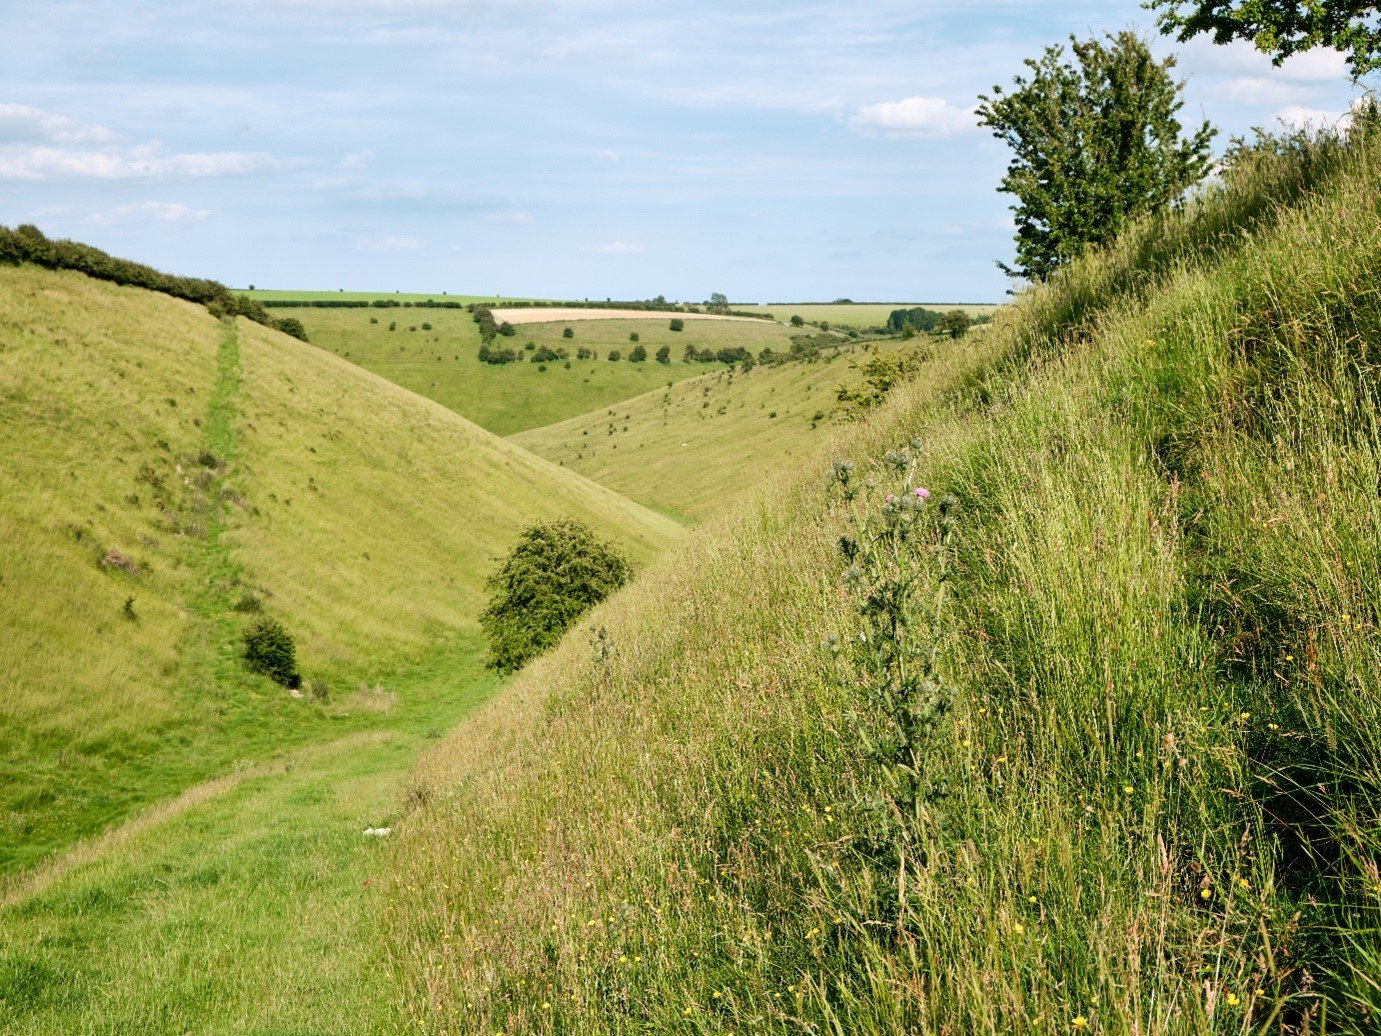 Yorkshire wolds rolling hills and valleysx4